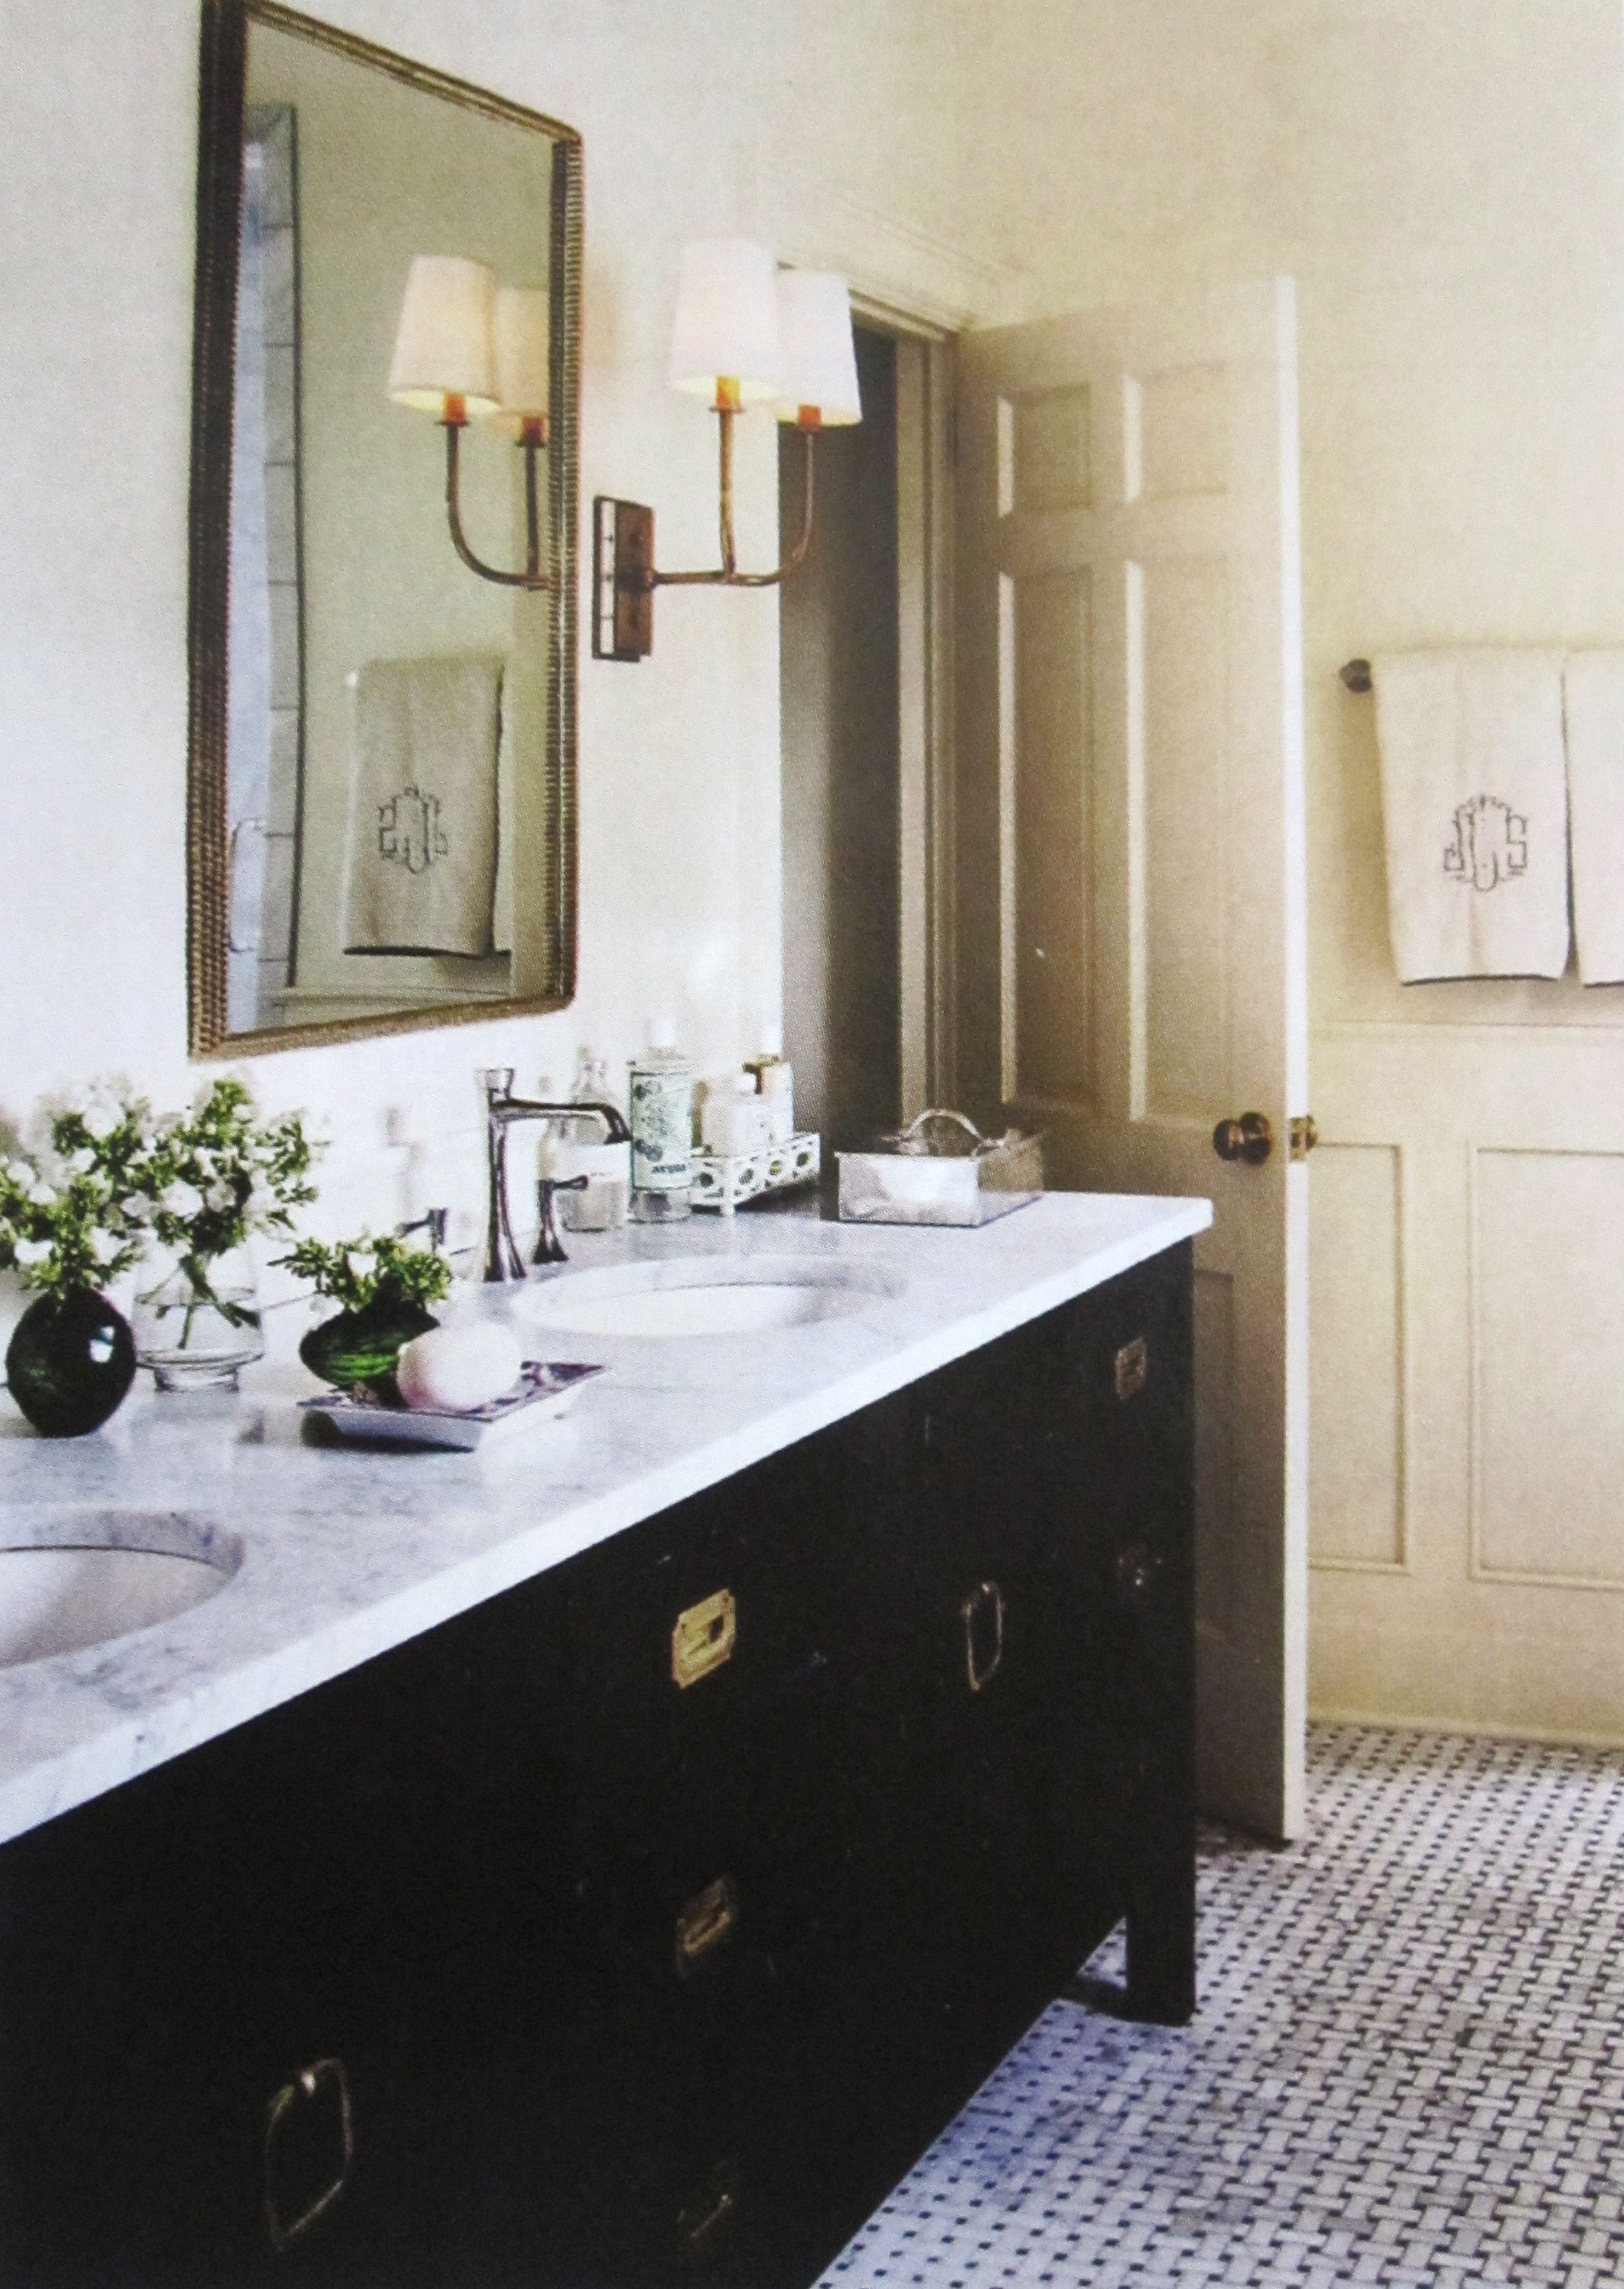 A Little Bit Of Everything From Barrie Benson And Others Bathroom Inspiration Beautiful Bathrooms Black White Bathrooms